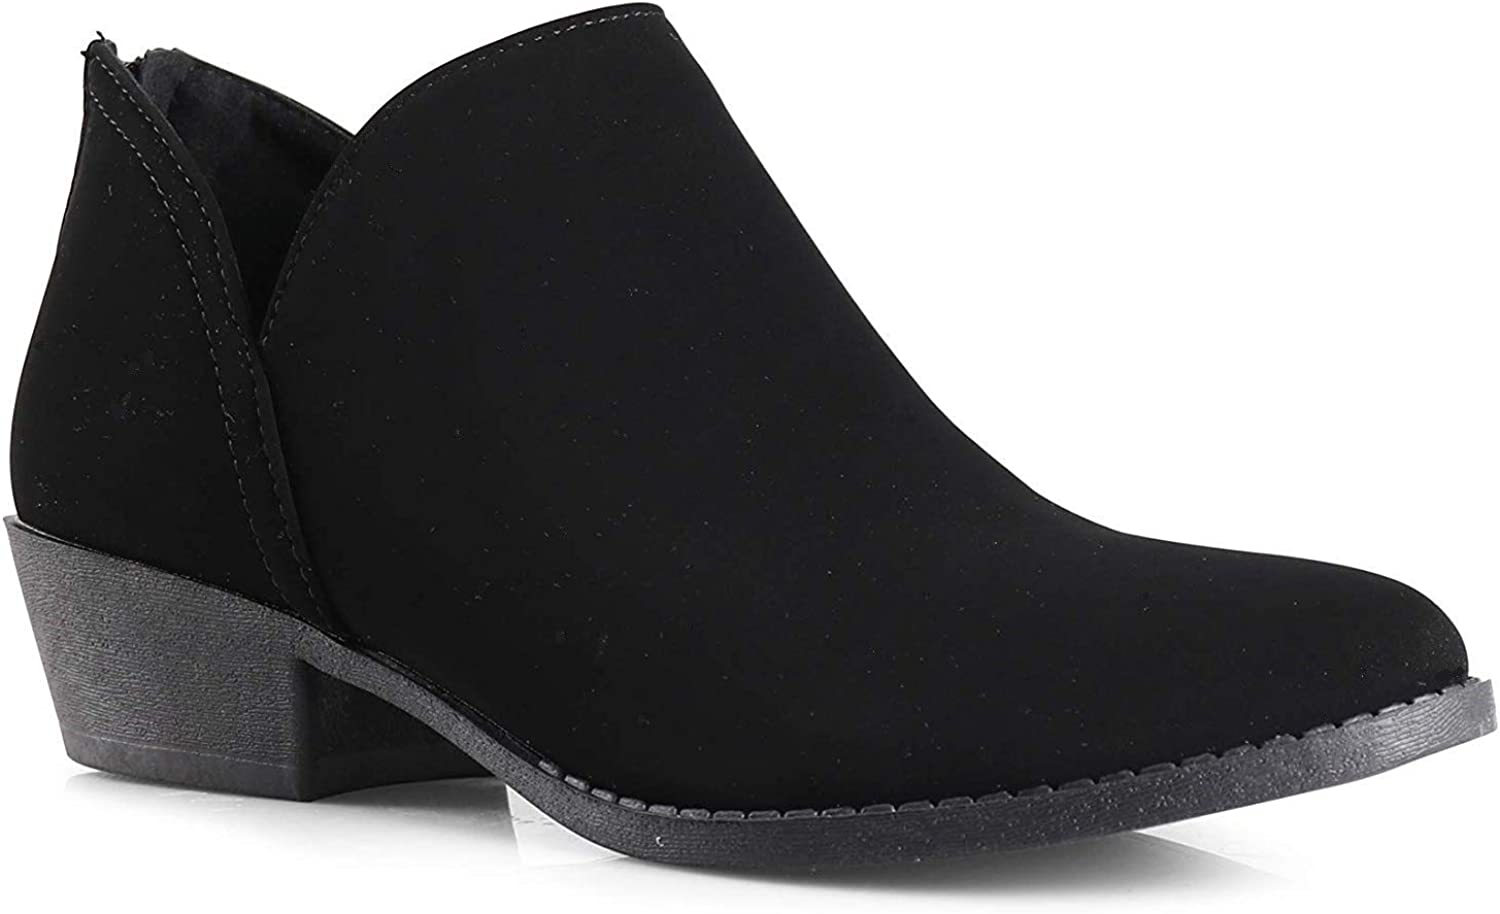 City Classified Women's Ankle Bootie Side V Cut Low Chunky Stacked Heel, Black Nubuck, 6